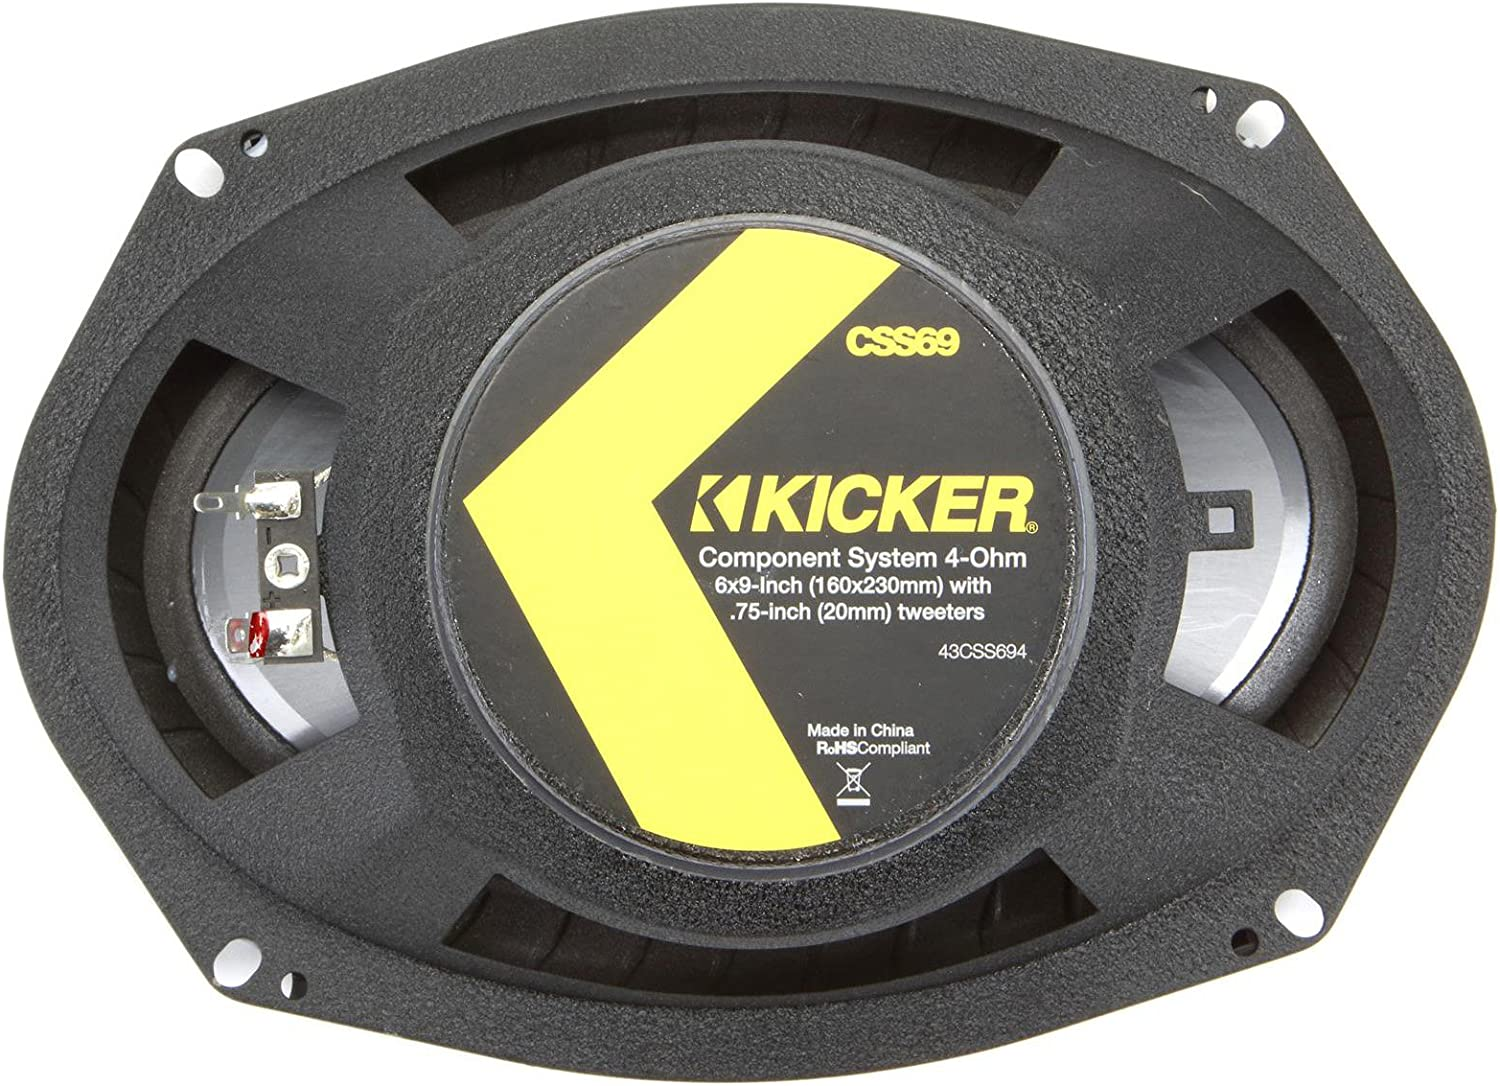 4-Ohm Kicker 43CSS694 CSS69 6x9-Inch Component System with .75-Inch tweeters